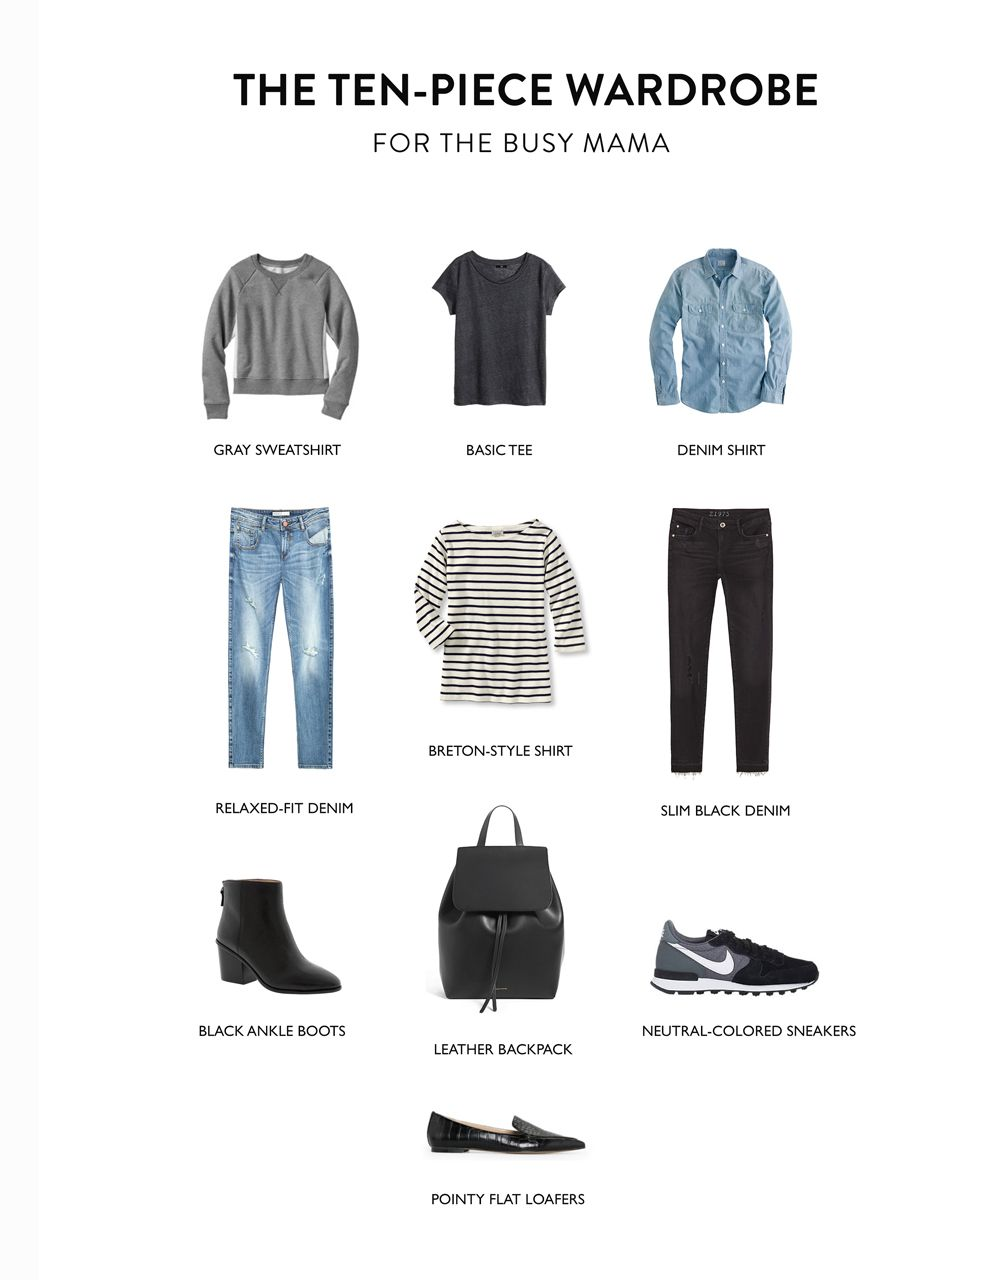 The Ten-Piece Wardrobe For the Busy Mama